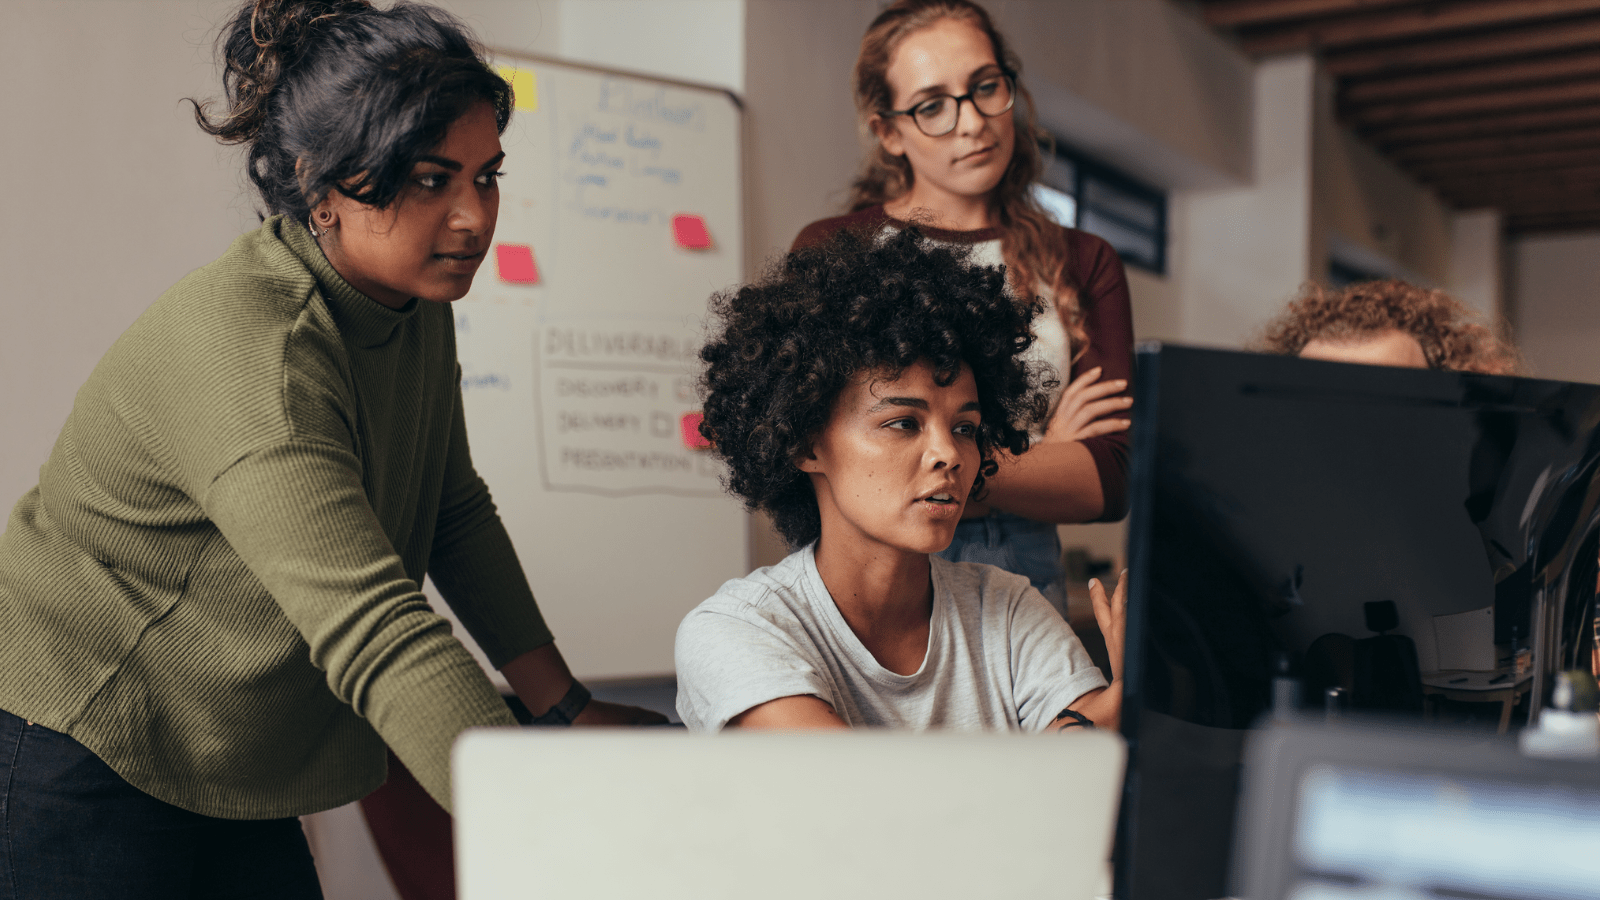 Tech leadership: creating a culture of female inclusion at the top